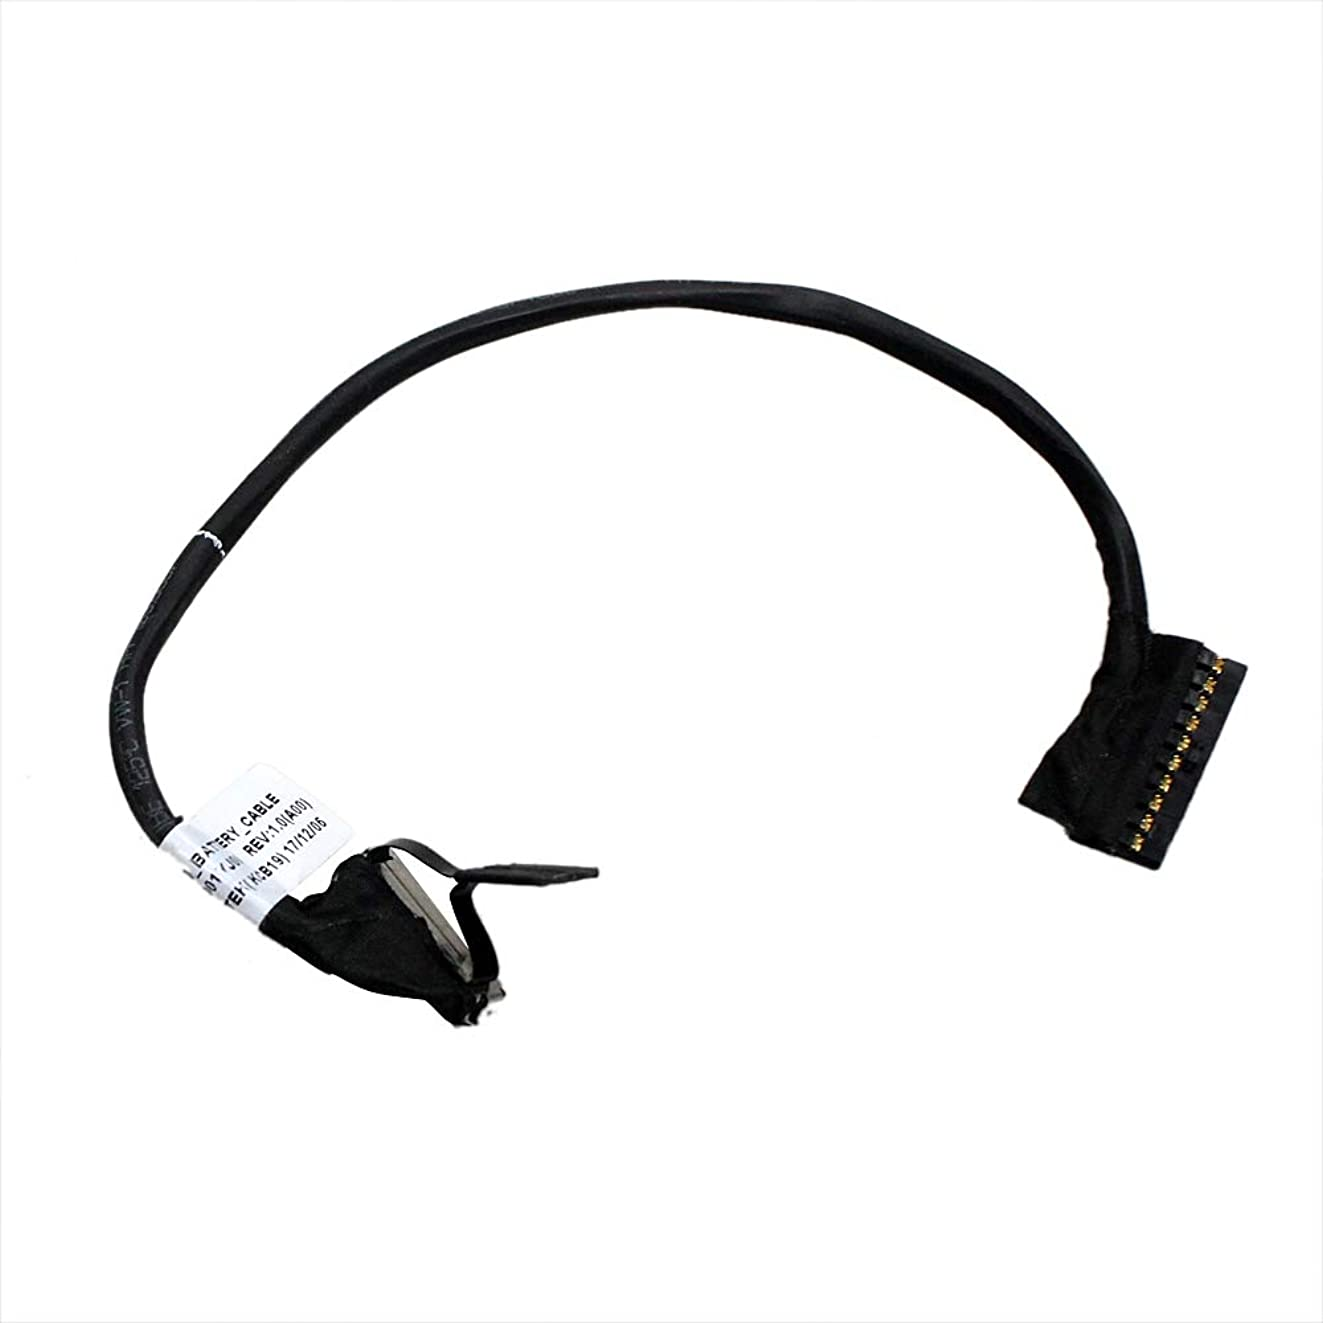 GinTai Battery Cable Replacement for Dell Latitude E5450 5450 08X9RD ZAM70 DC02001YJ00